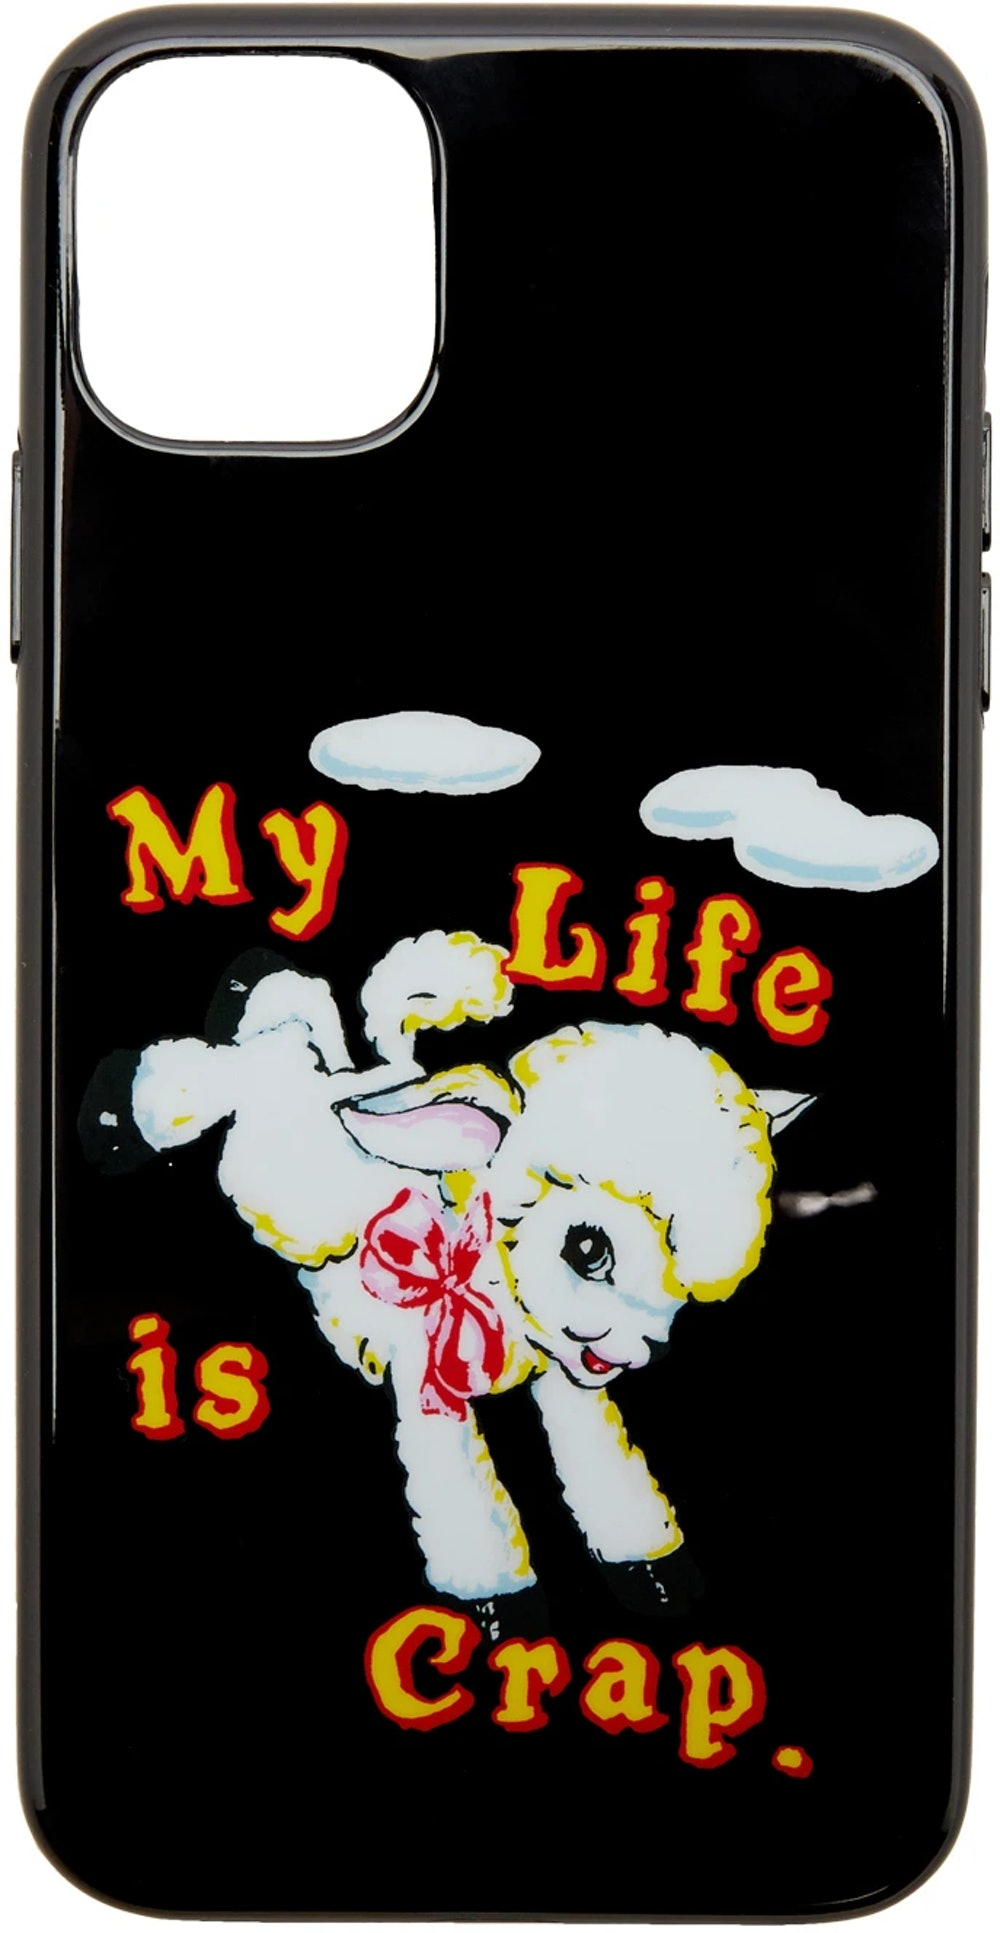 Marc Jacobs Black Magda Archer Edition iPhone Case